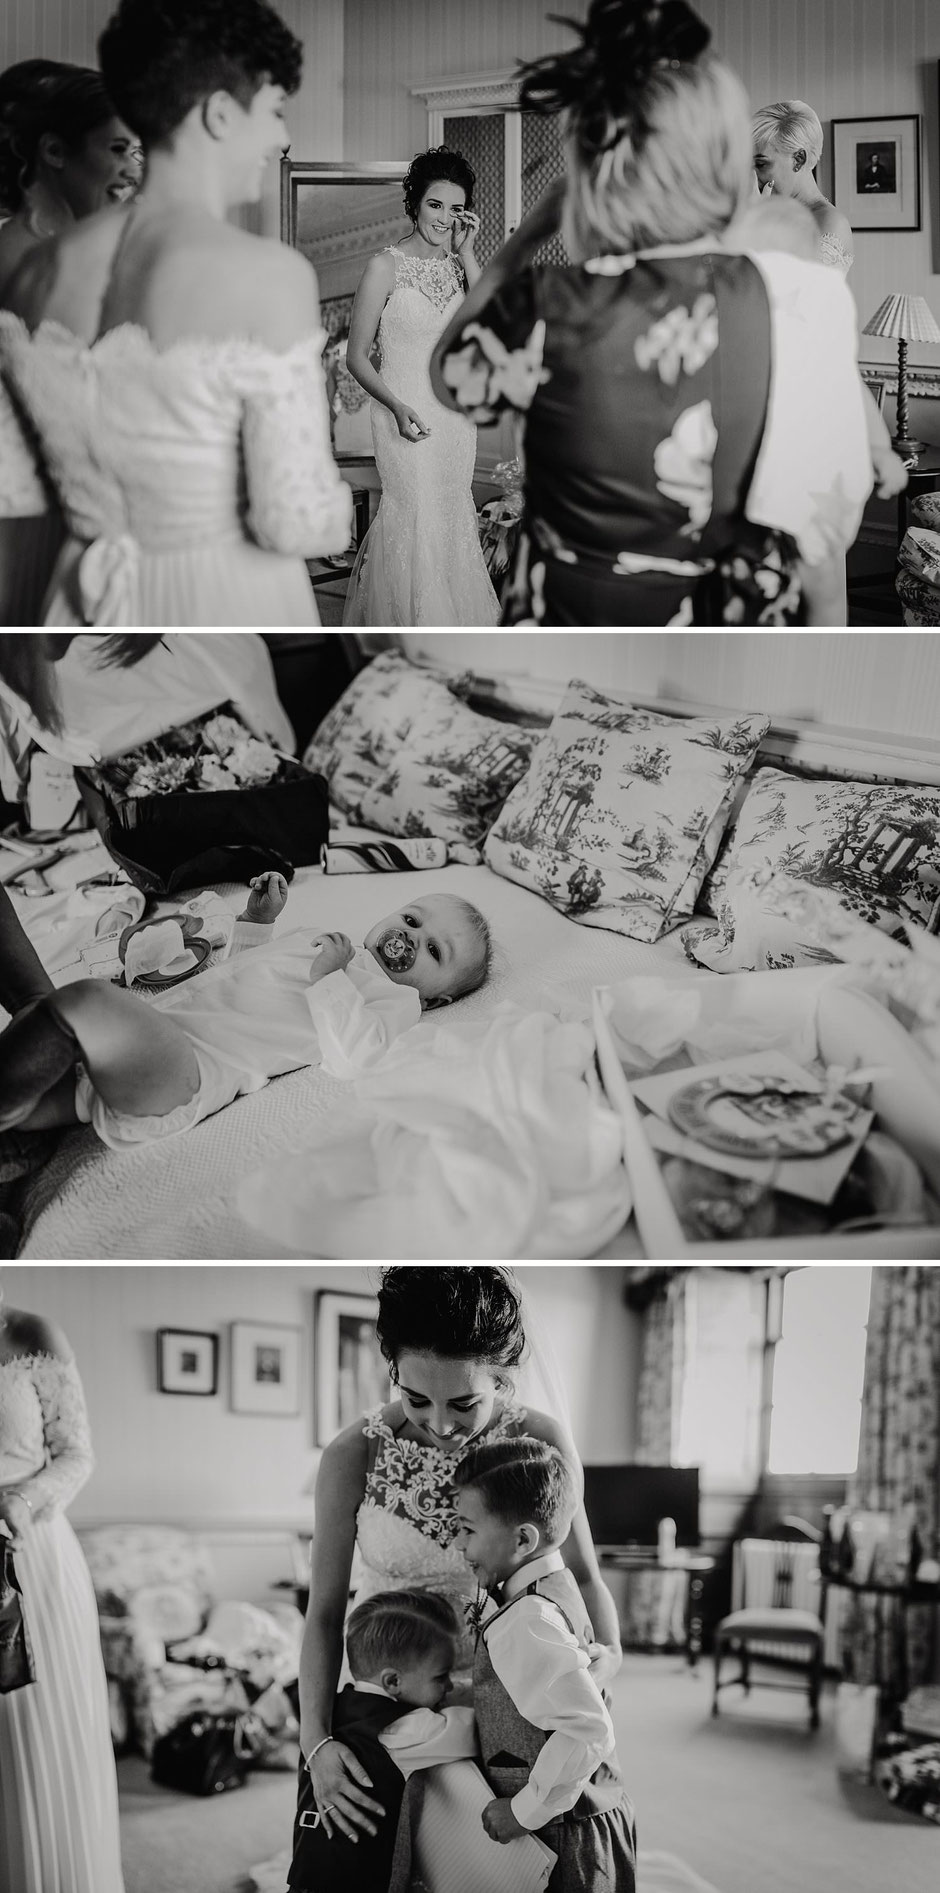 black and white images of a bride with her bridesmaids and sons during bridal preparations on her wedding day